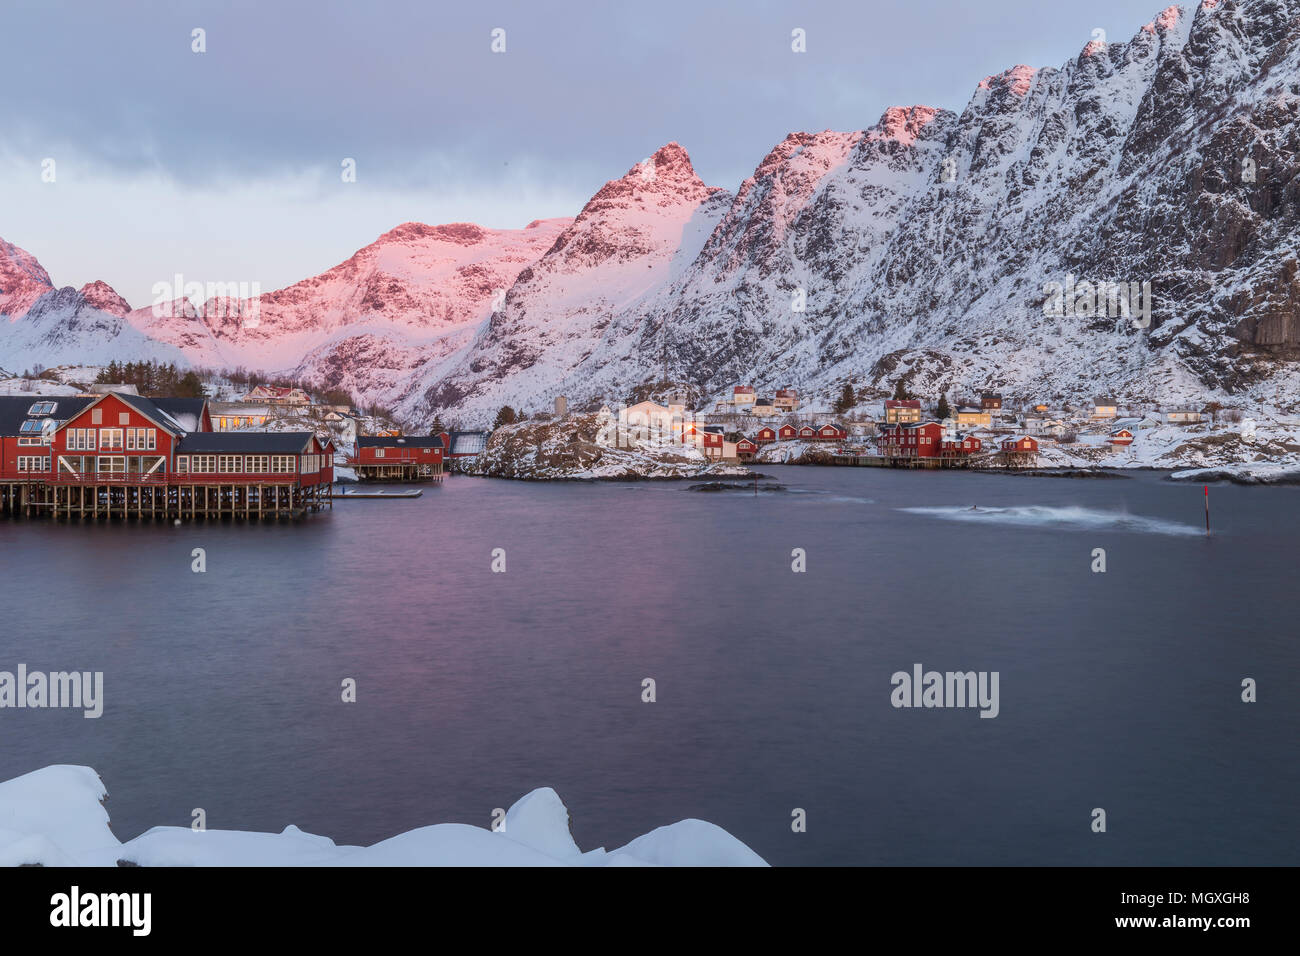 Harbor, rorbuer and snowy mountains at sunrise in A, Lofoten, Norway - Stock Image